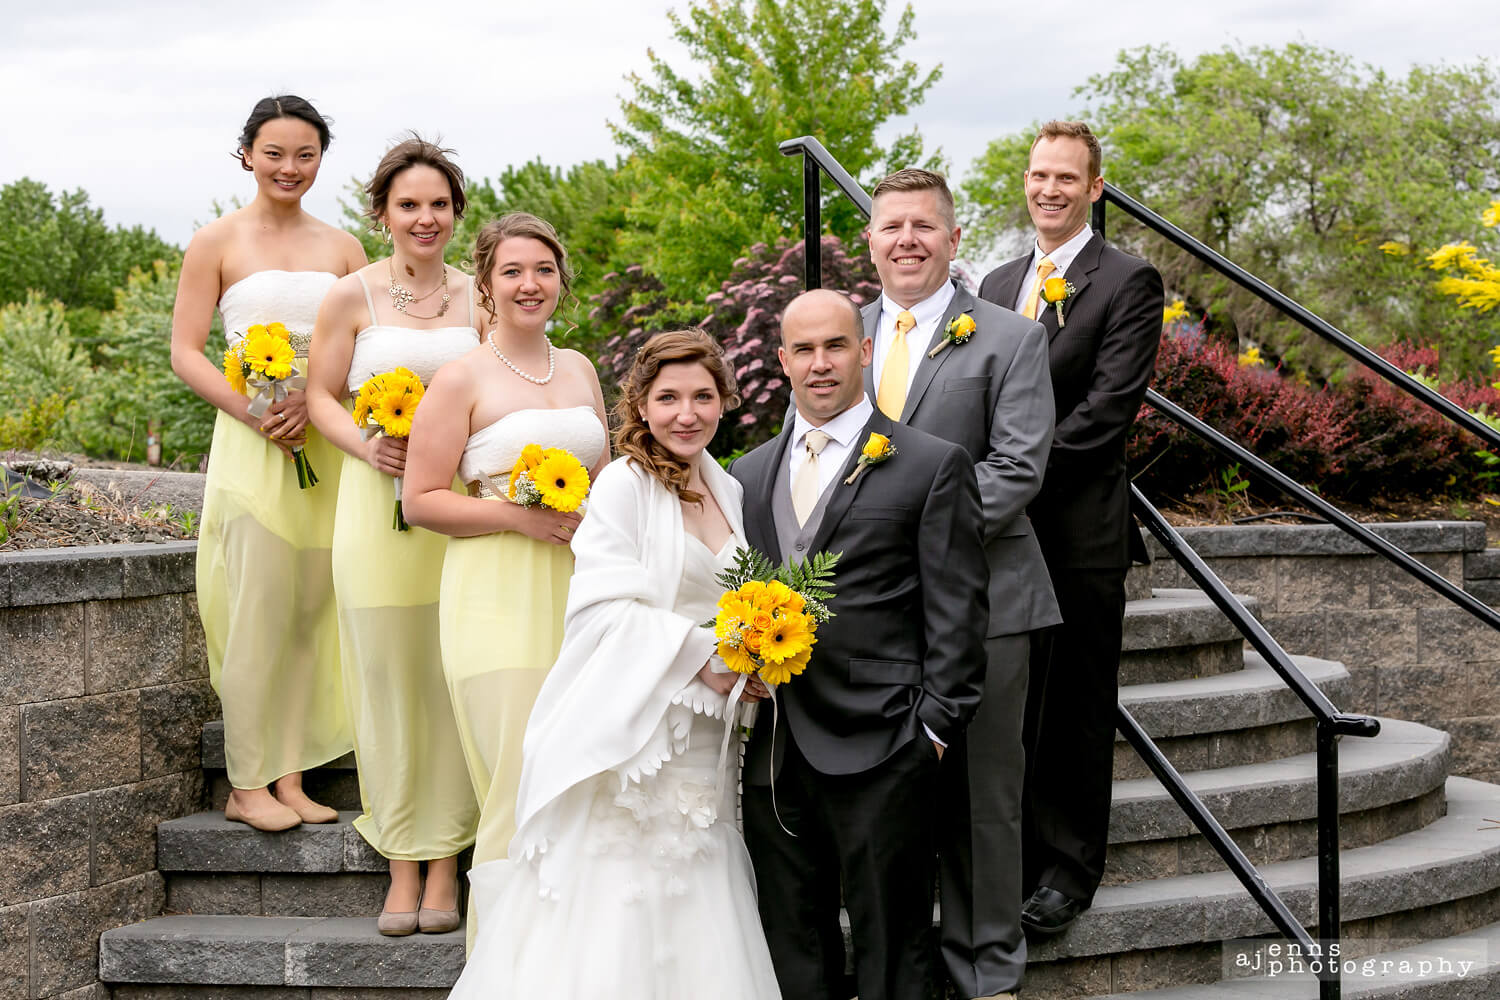 The wedding party standing on the stairs